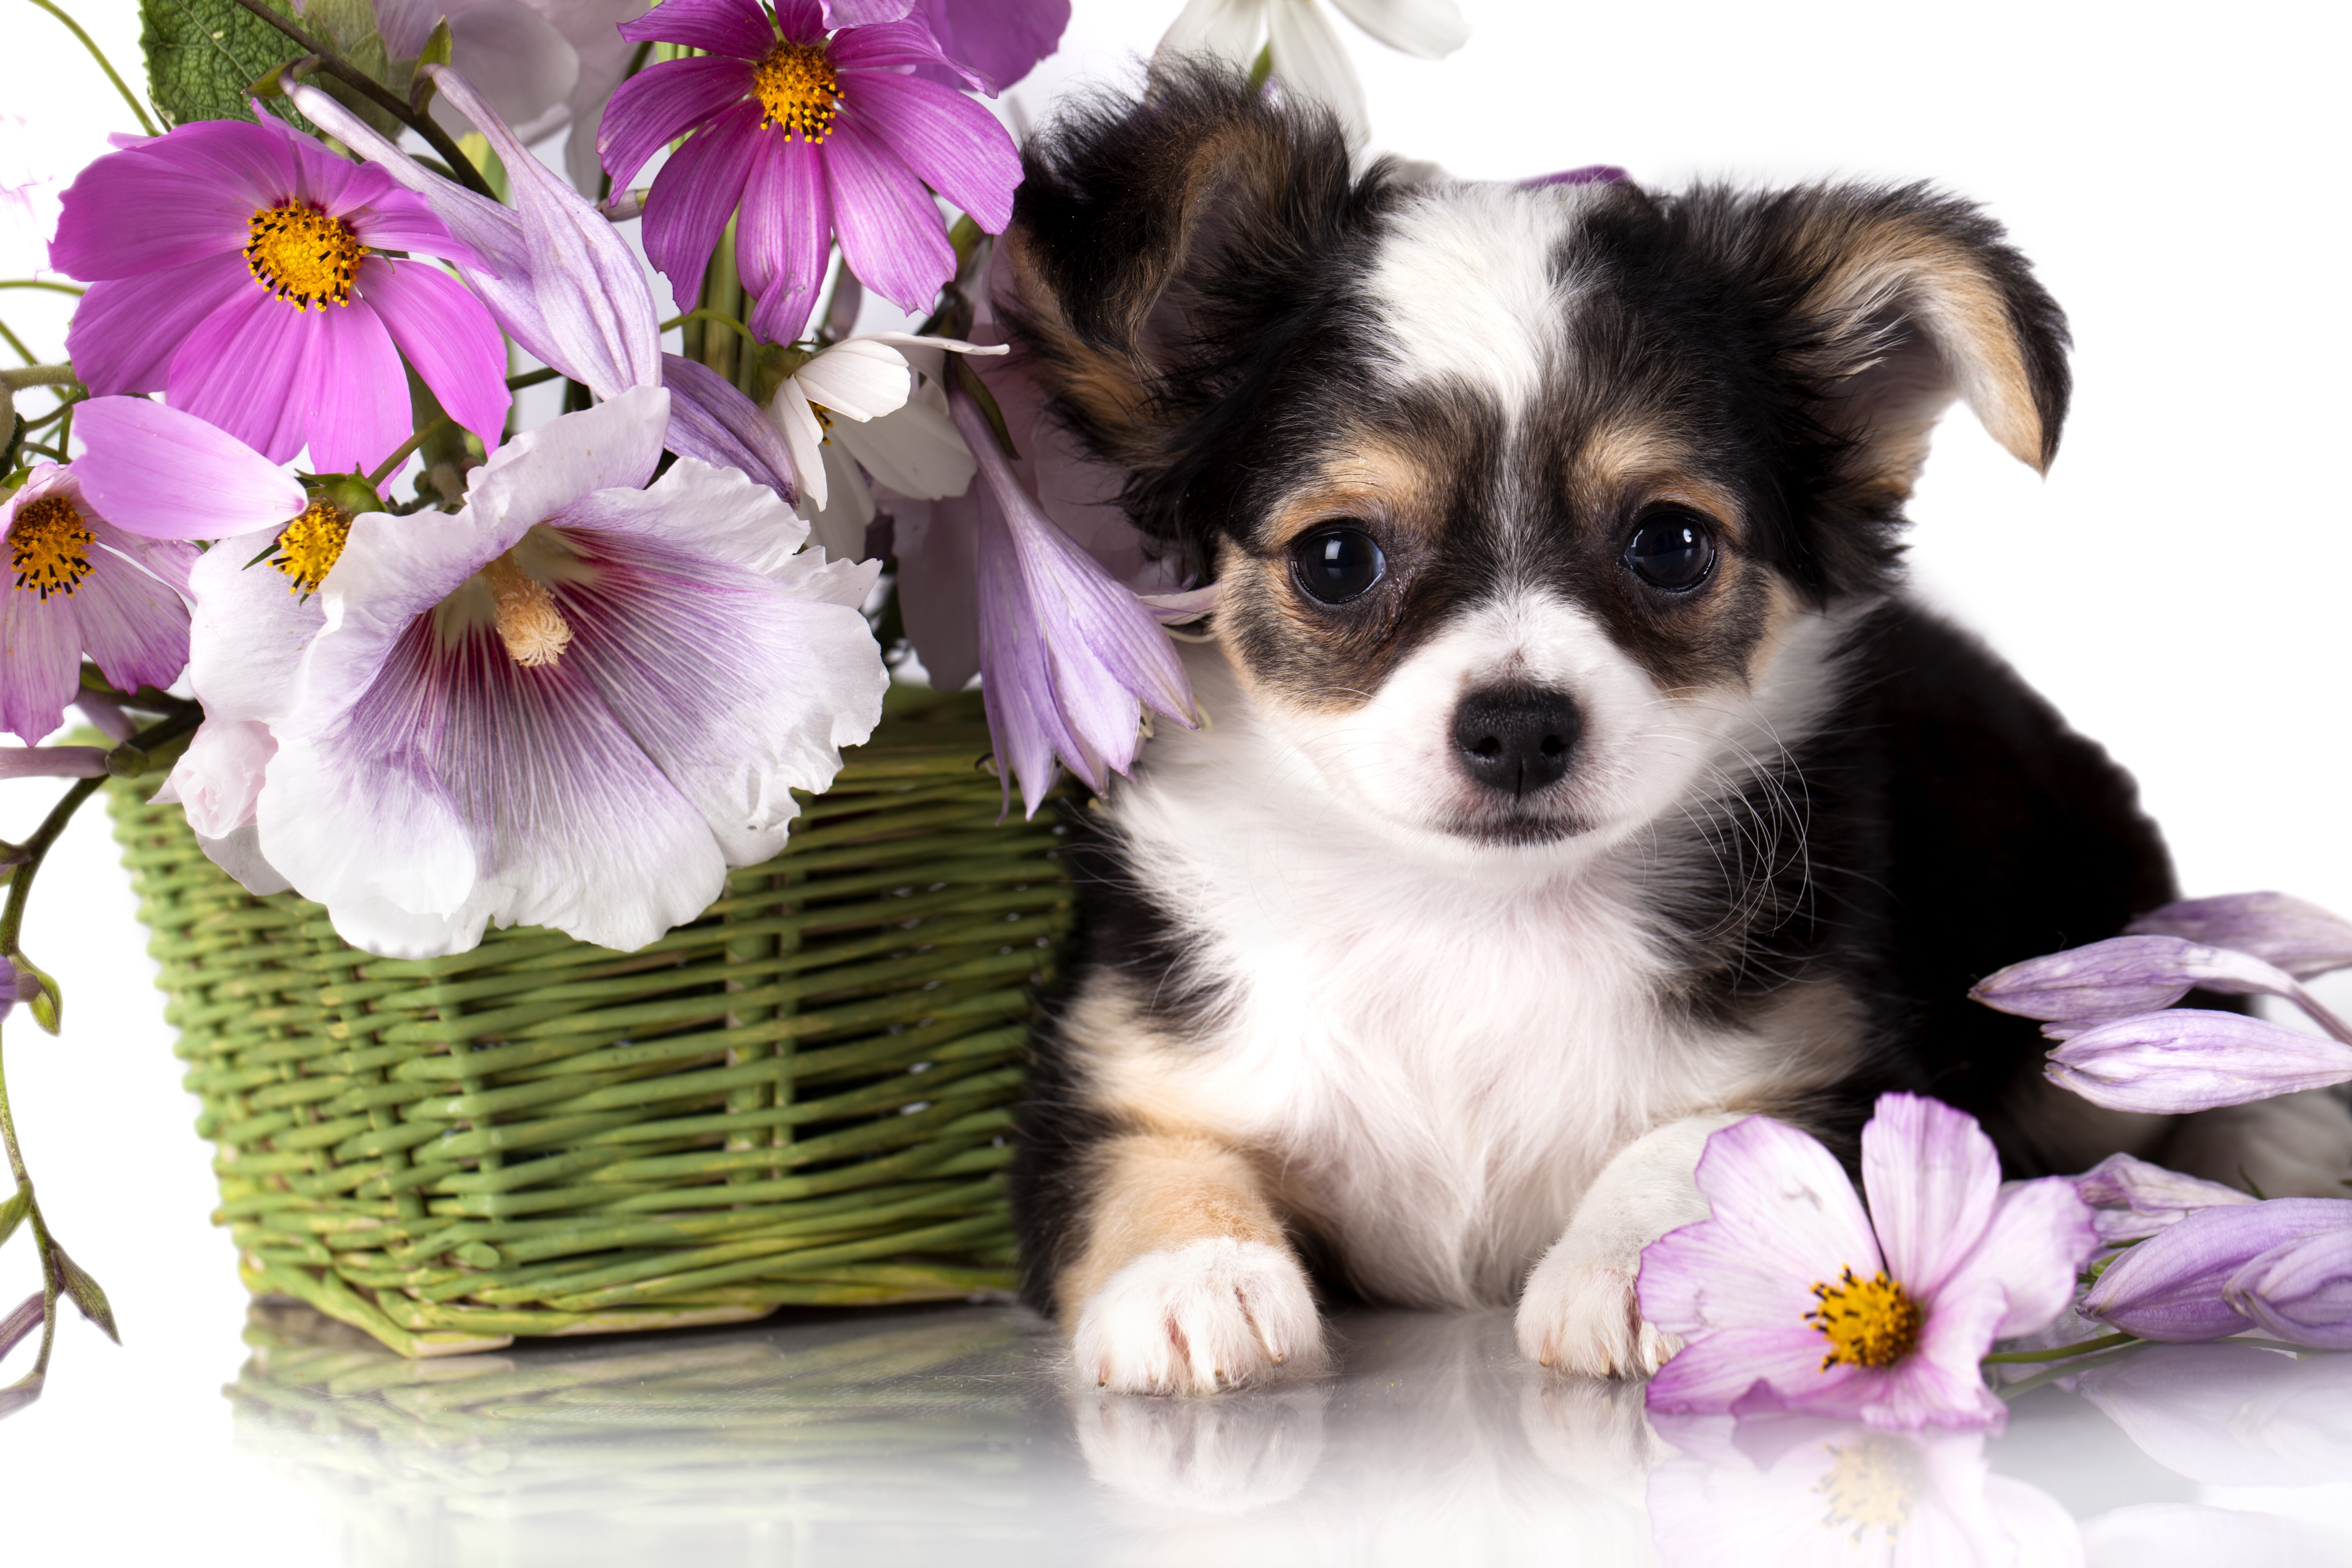 Cute Kitten Wallpapers For Phone Wallpaper Chihuahua Puppy Dog Flower Animal Animals 3861